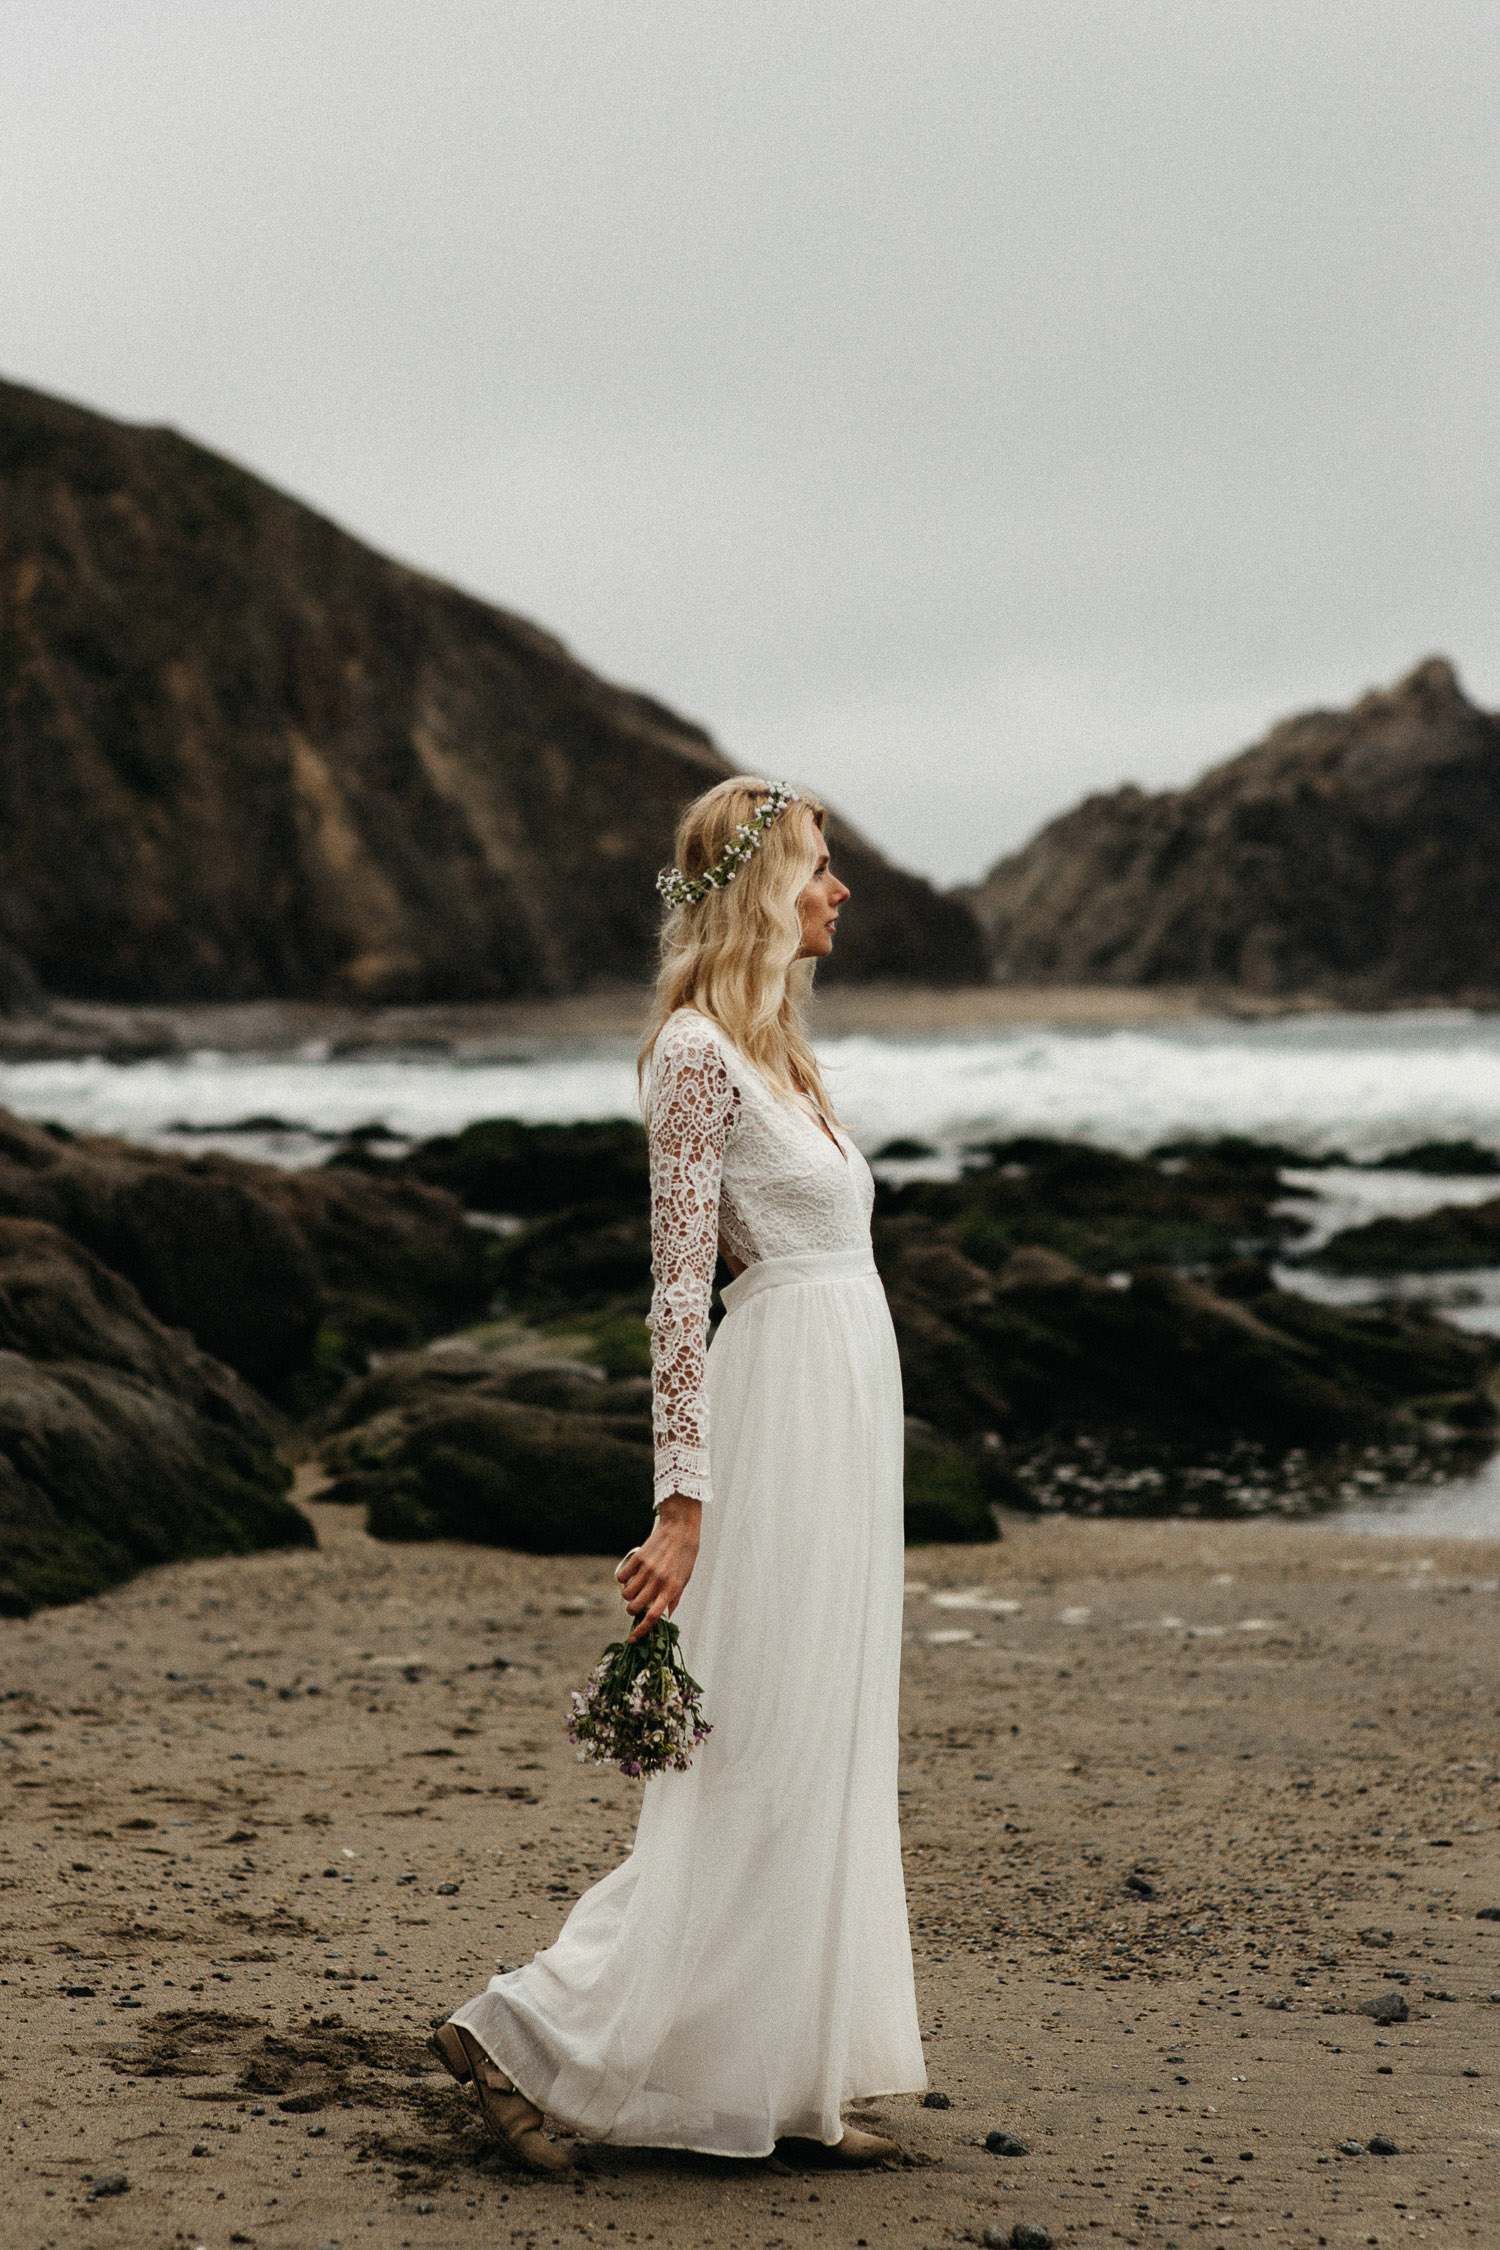 Image of bride portrait on beach